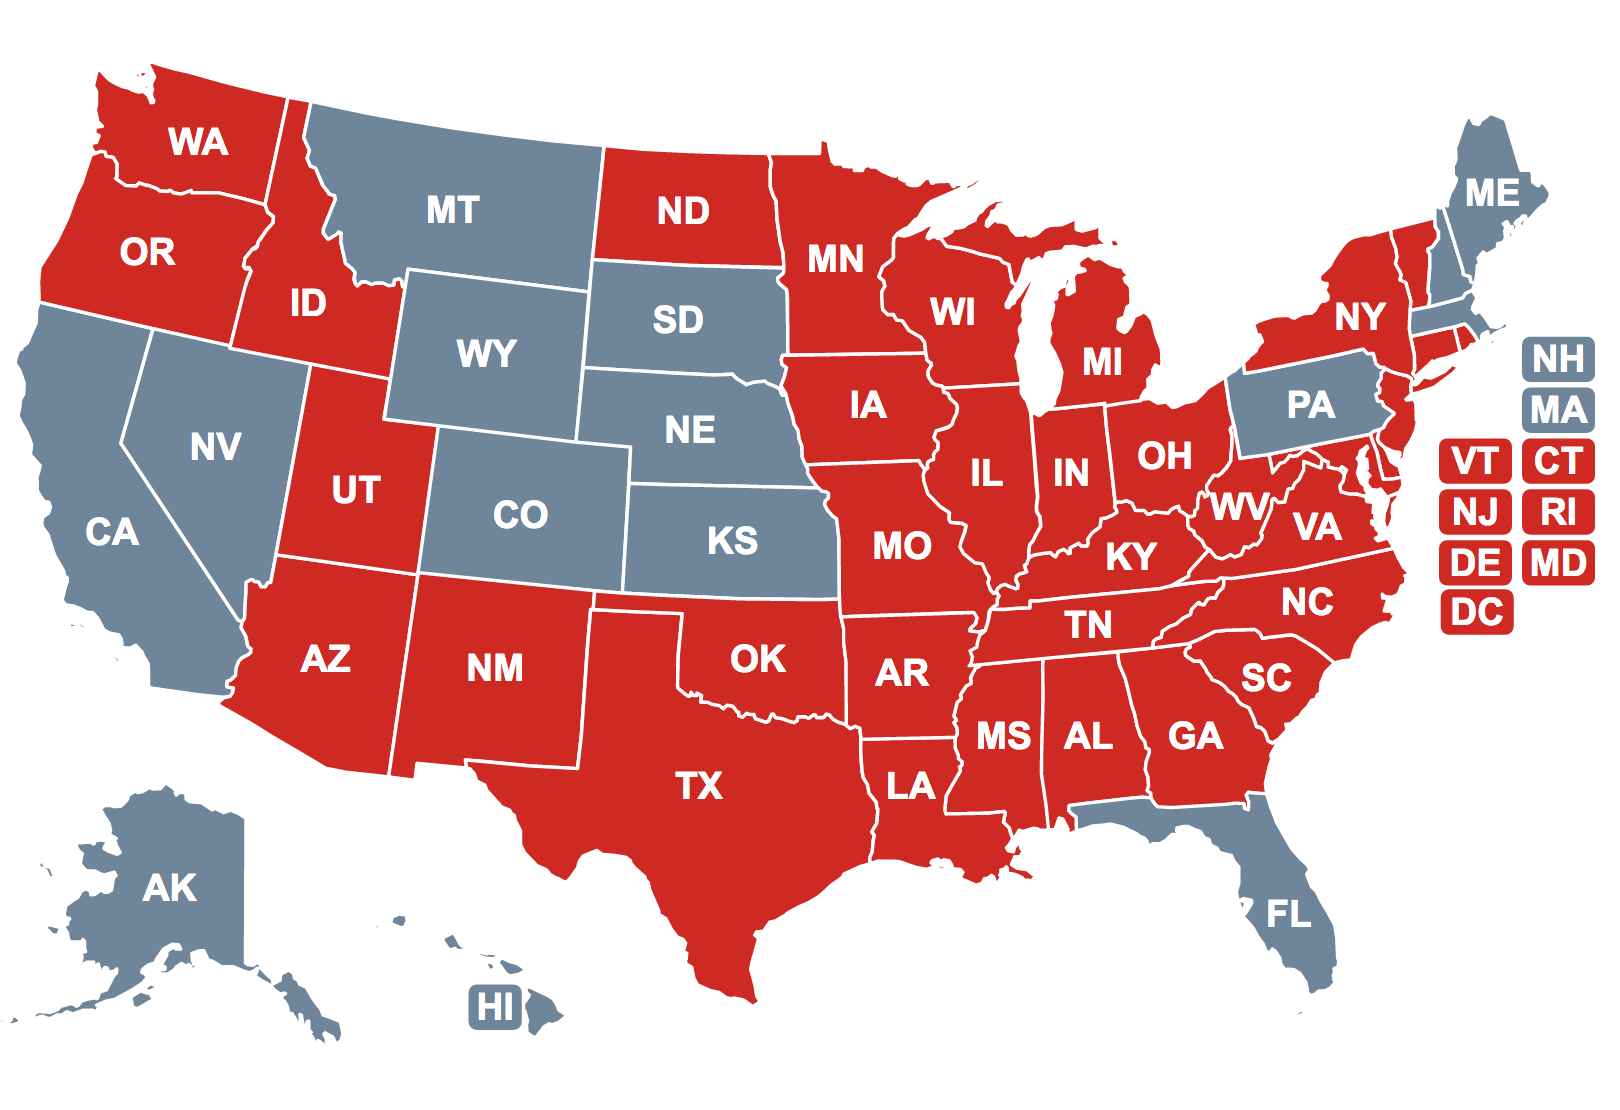 States That Require Cpr Training Before High School Graduation Are Depicted In Red